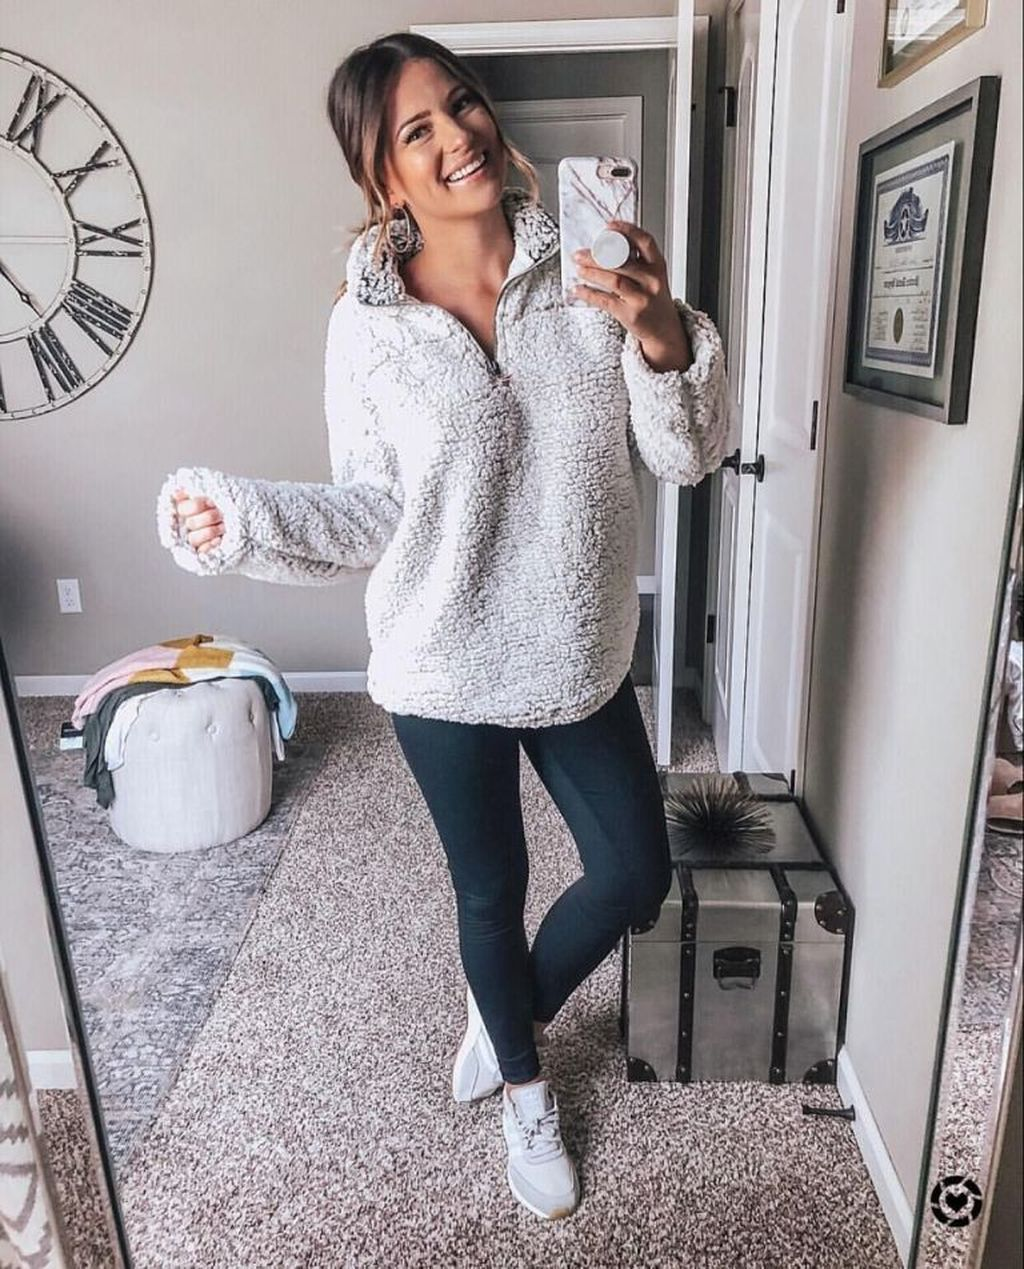 39 Cozy And Cute Winter Outfit With Legging #winteroutfits